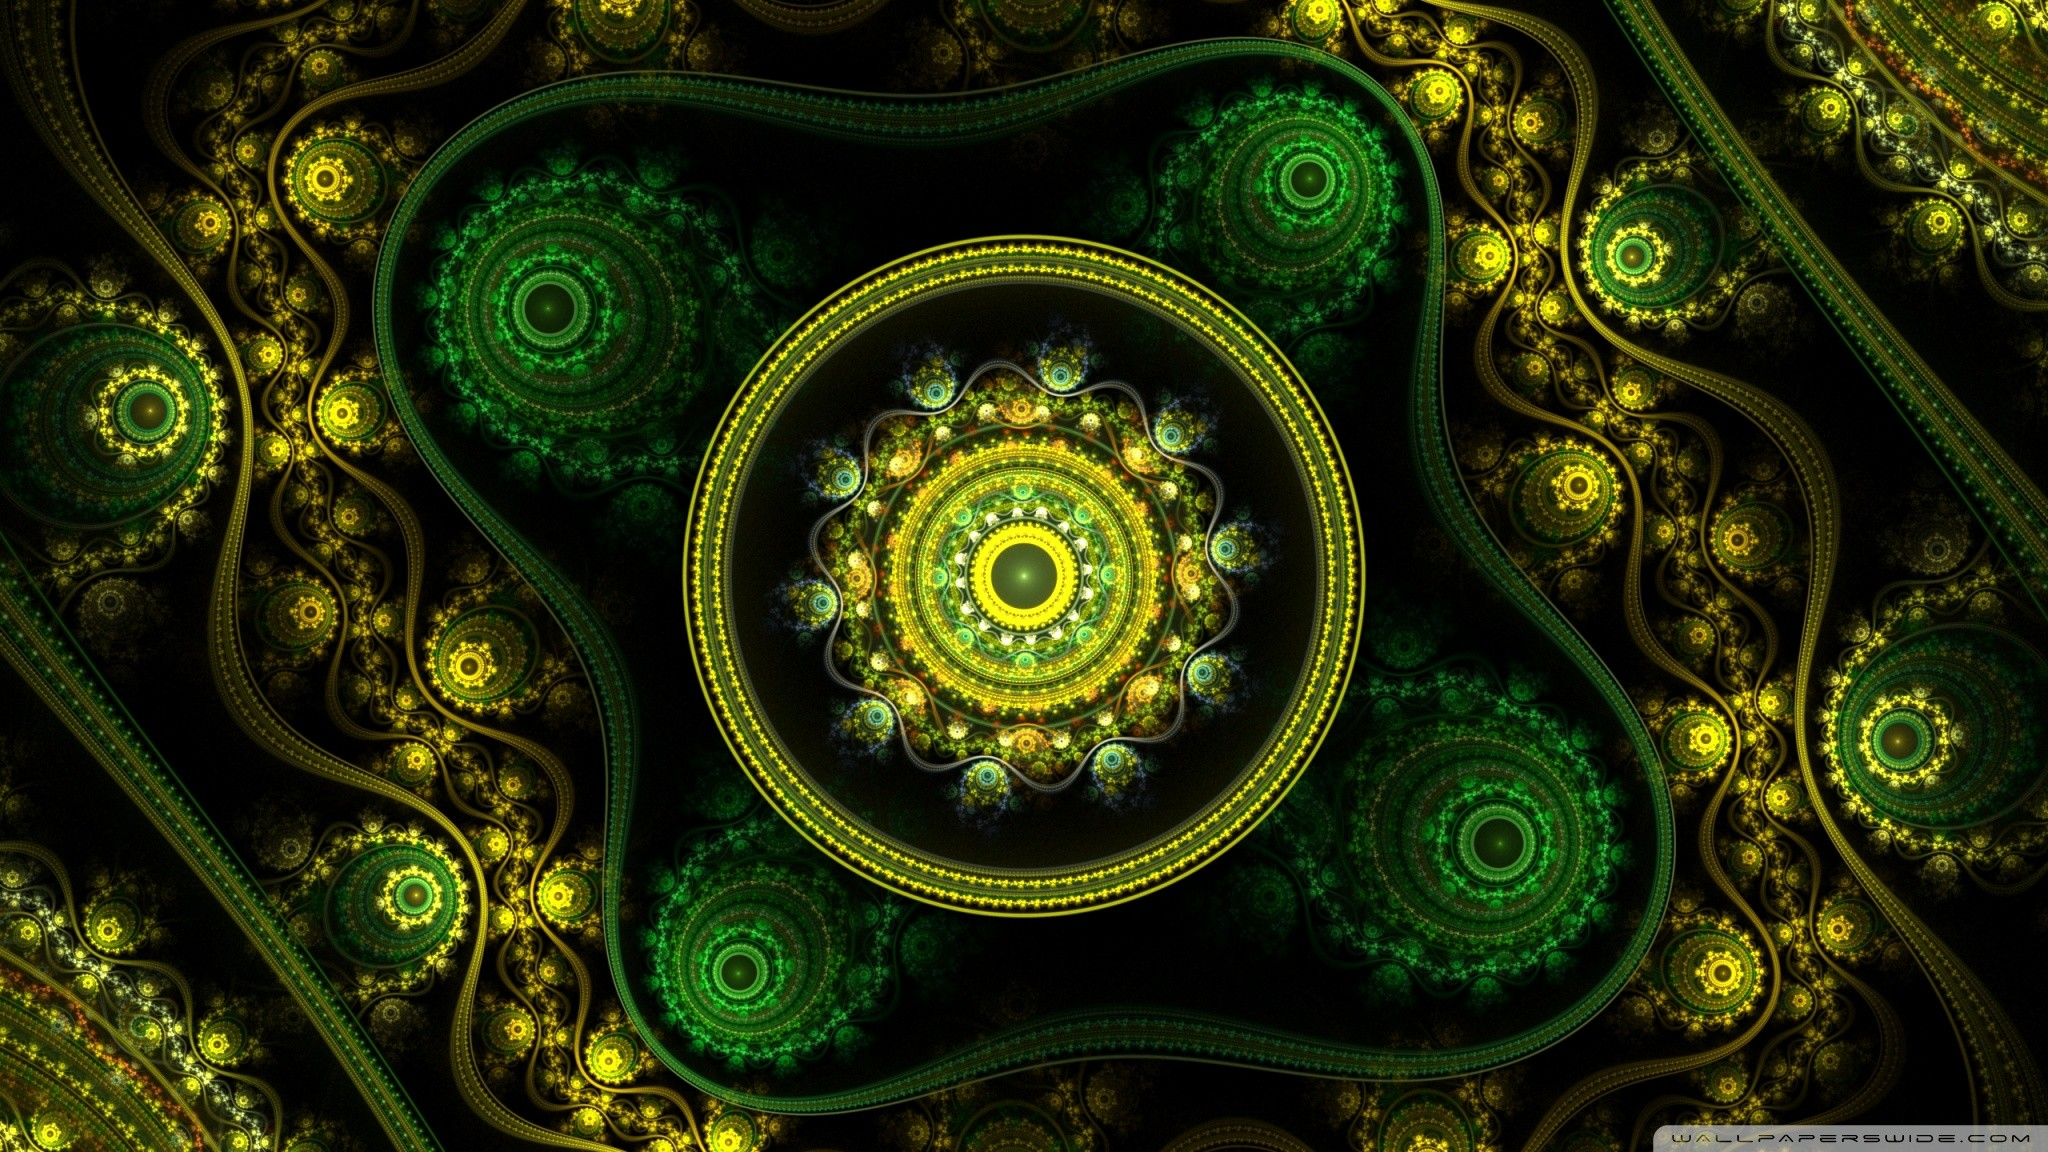 Celtic Wallpaper For Computer (53+ Images